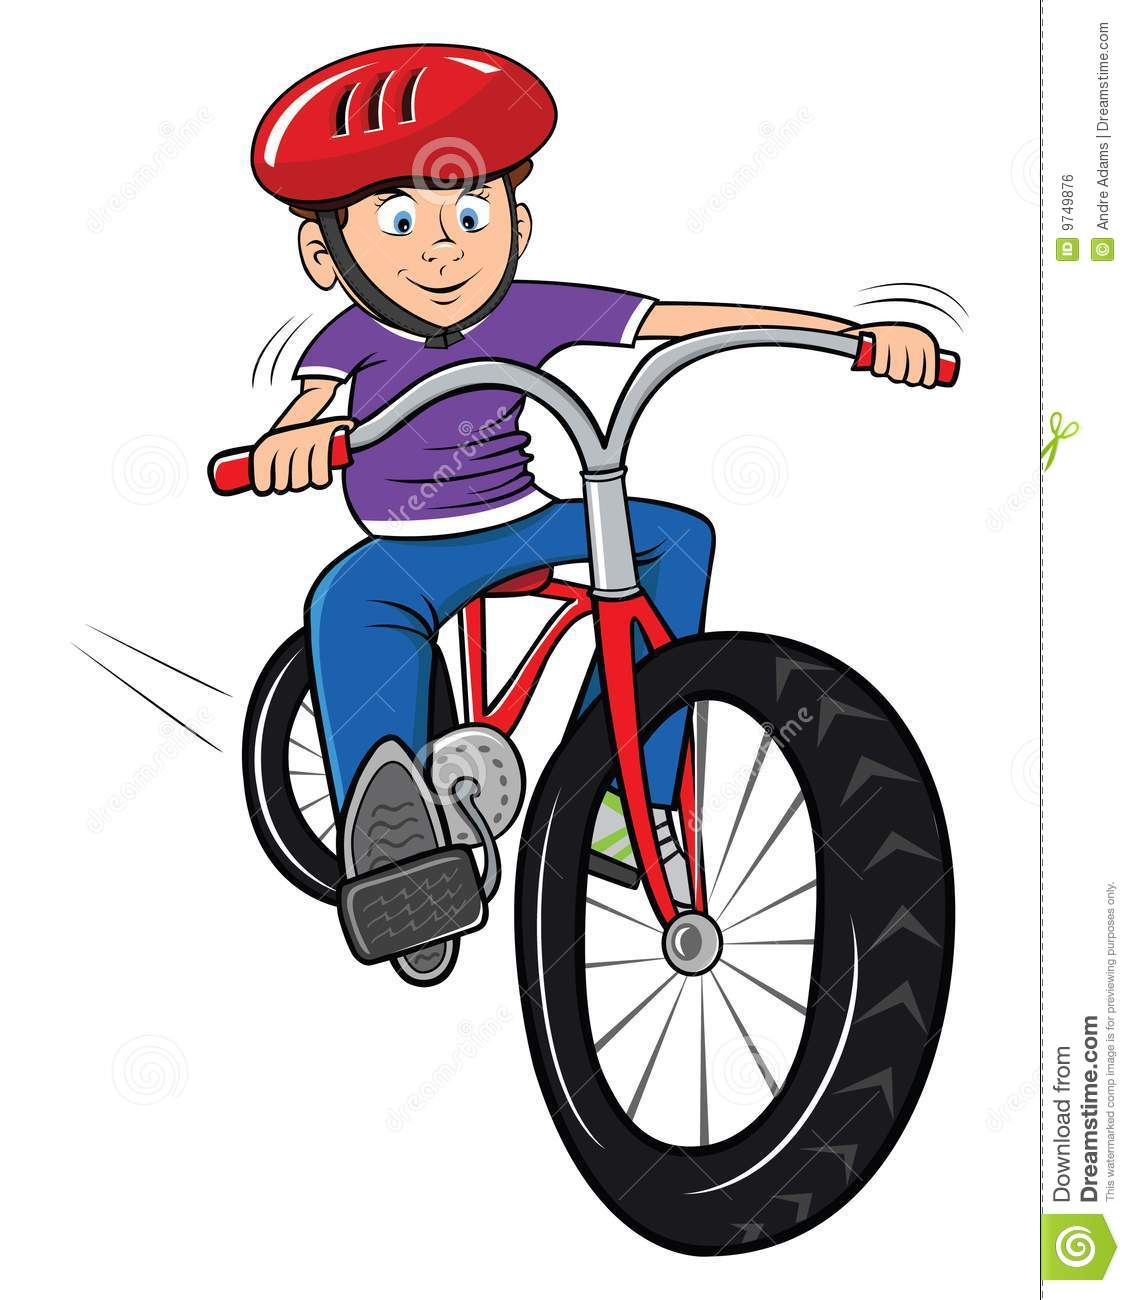 hight resolution of 1130x1300 bike clipart his